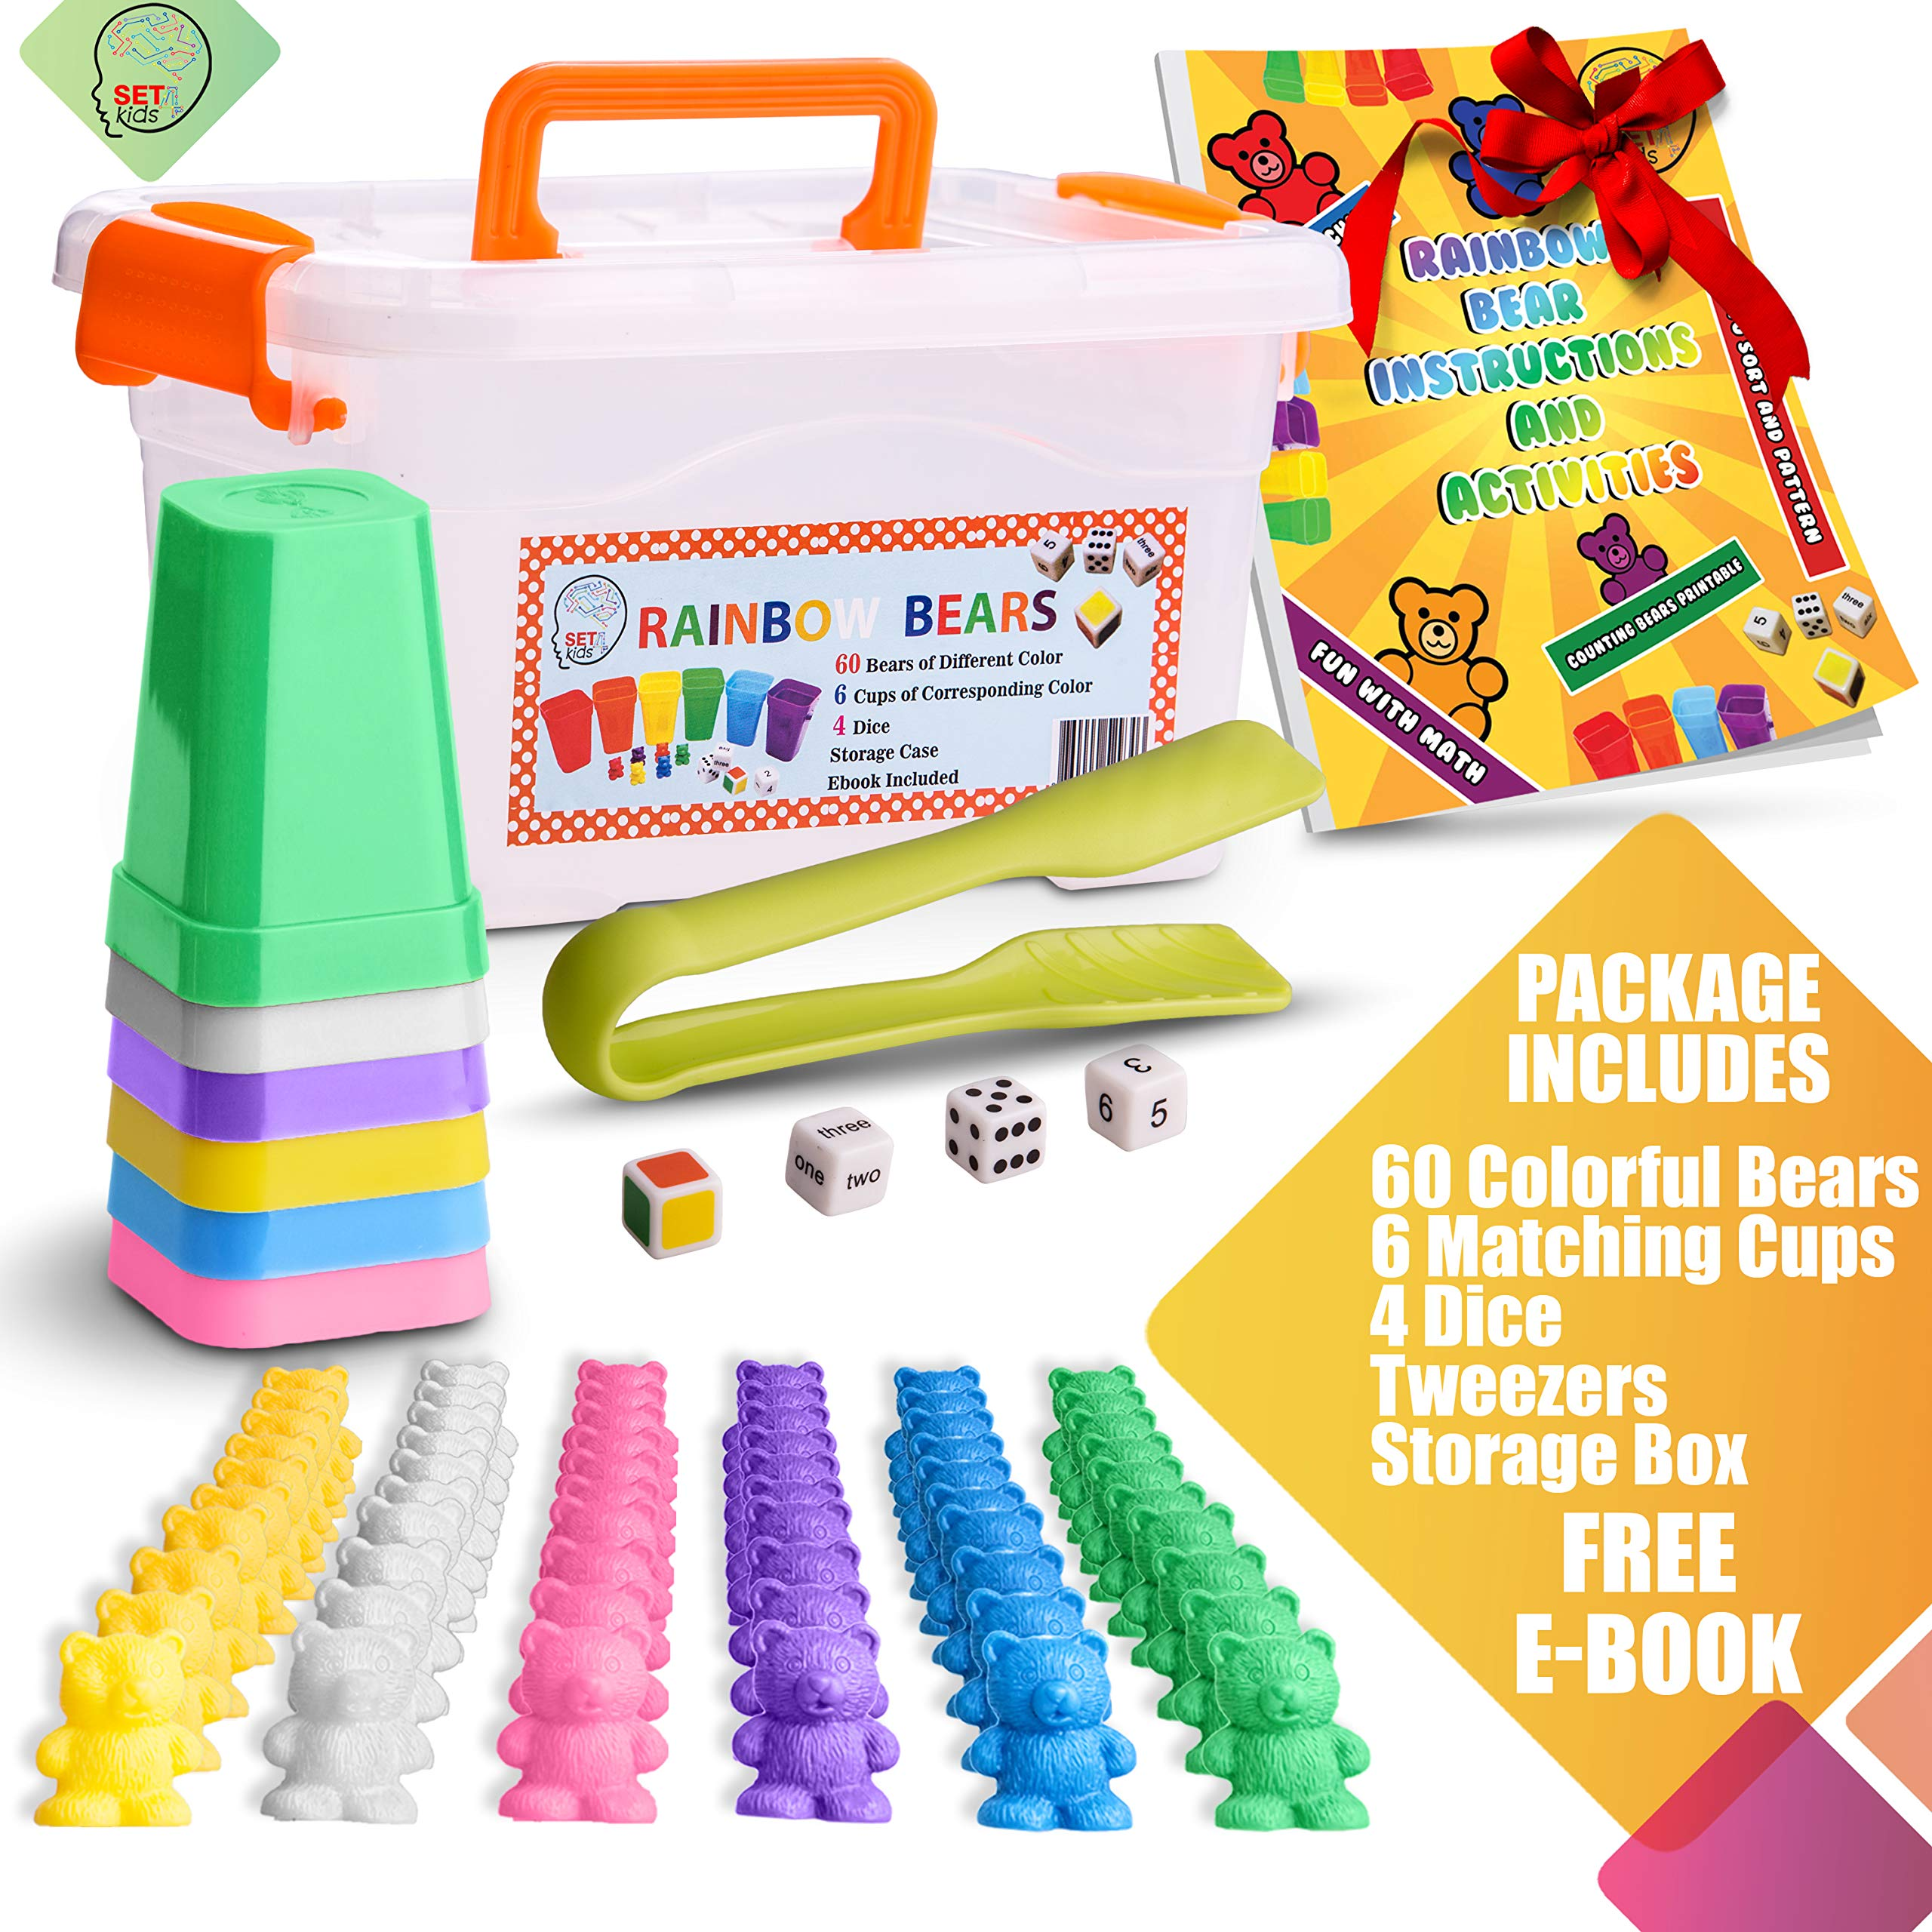 SET4kids Counting Bears with Matching/Sorting Cups, 4 Dice ,Tweezers and an Activity e-Book. for Toddlers and Early Childhood Education. 71 pc Game Set in Pastel Colors. by SET4kids